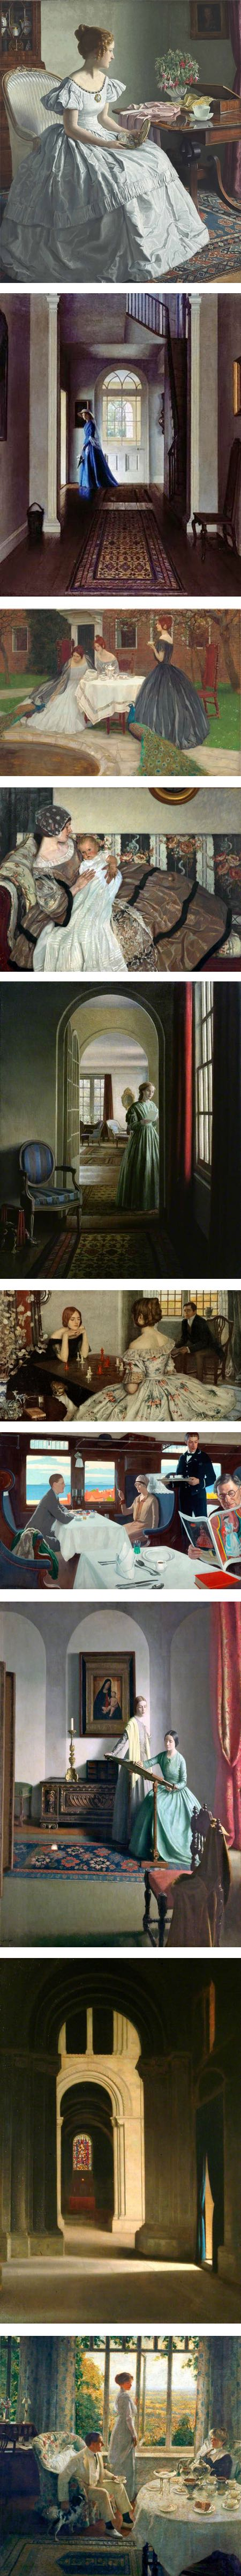 Leonard Campbell Taylor, British painter, portraits and figures in interiors